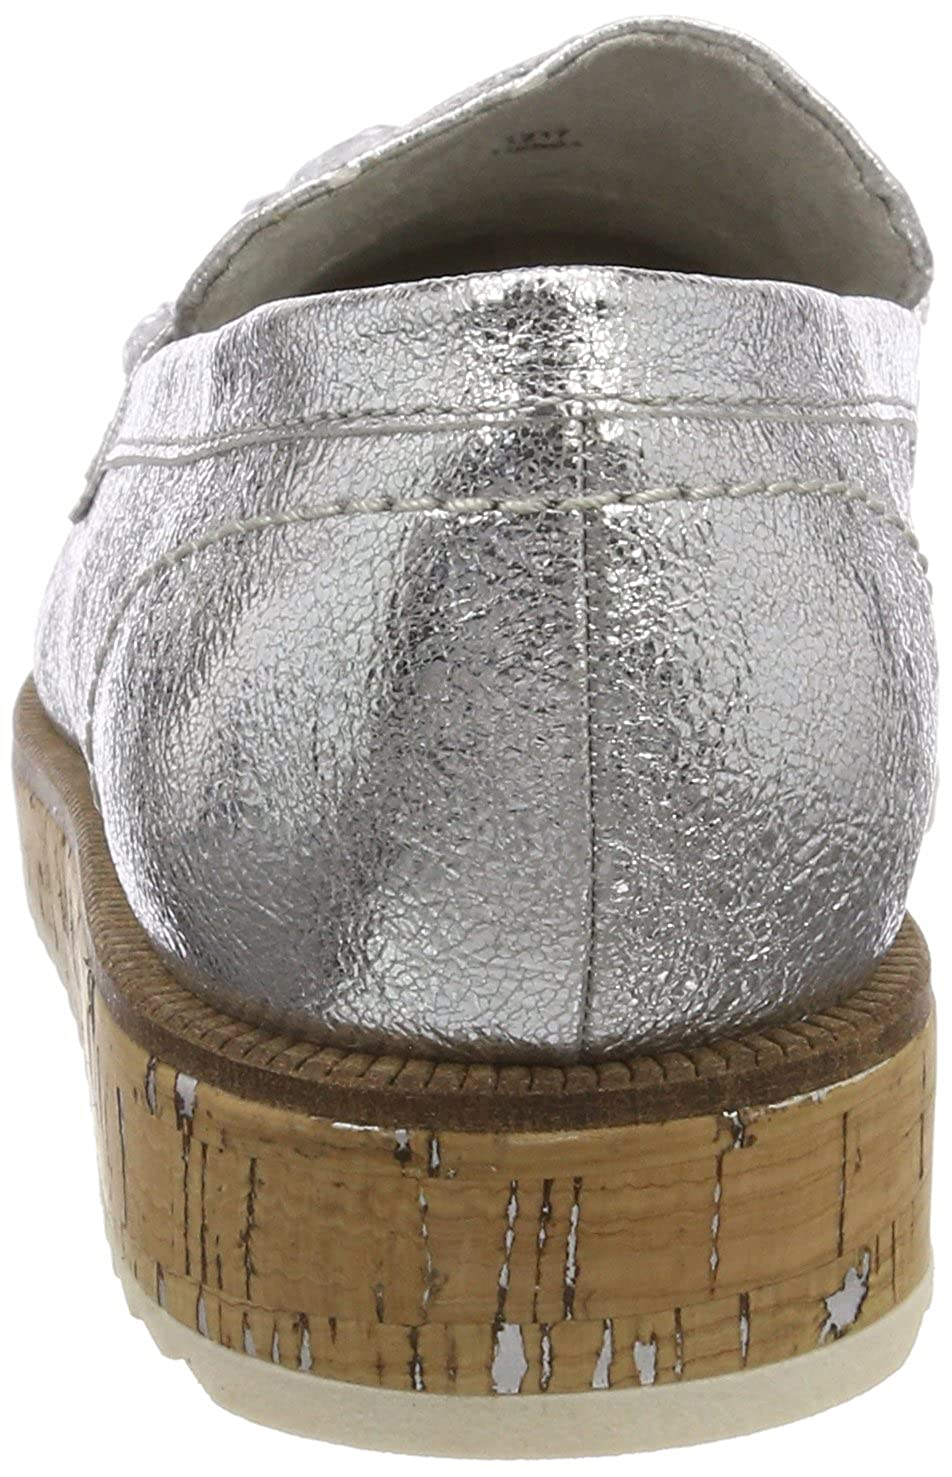 MARCO TOZZI Women's 24730 Loafers, Silver 941 5 UK: Amazon